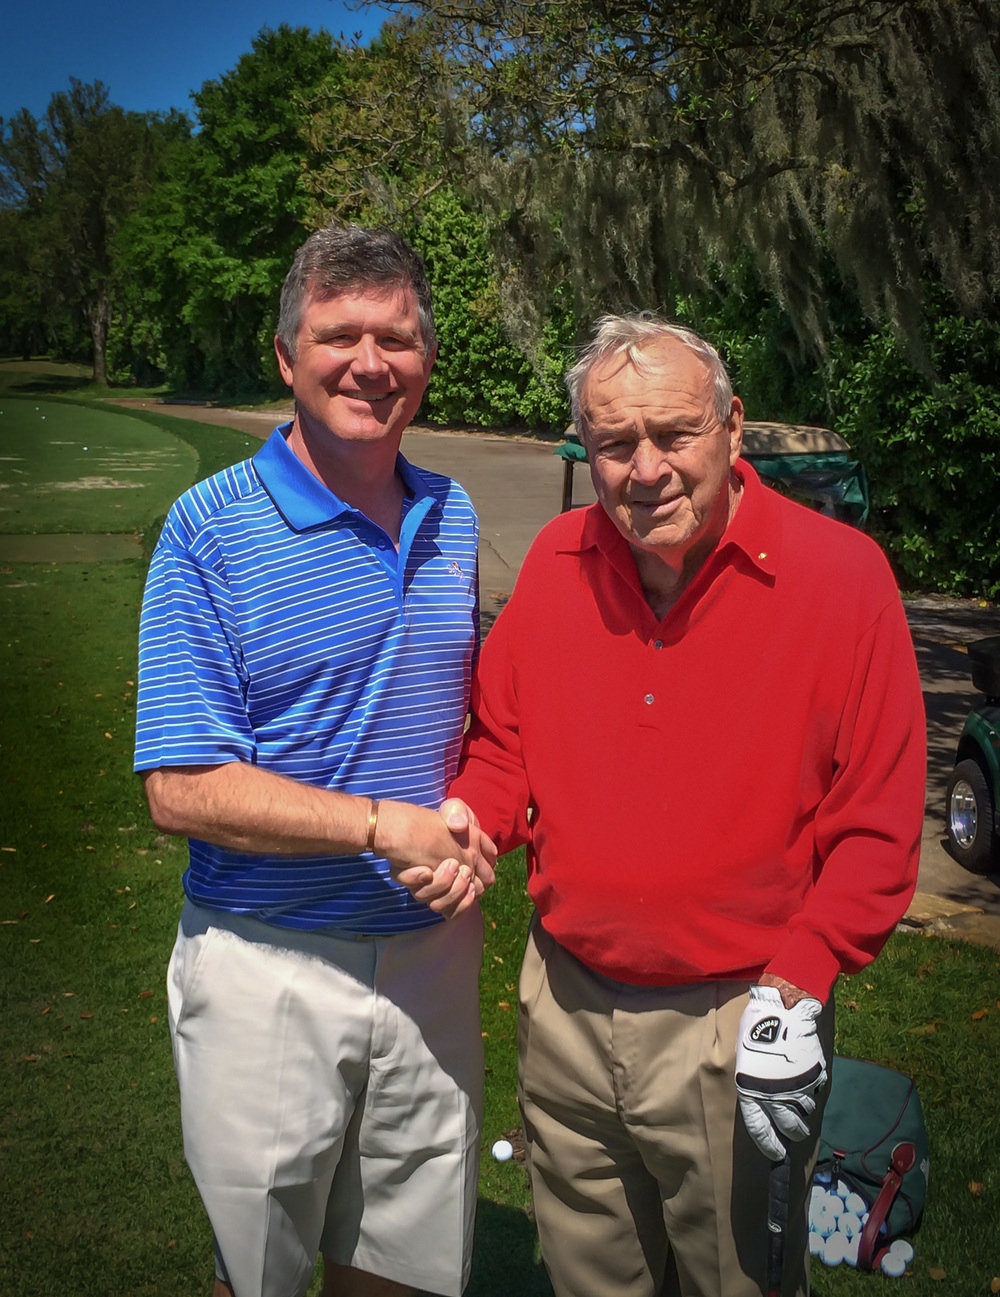 Arnold Palmer wishing Phill good luck for the trip after their latest practice session together.